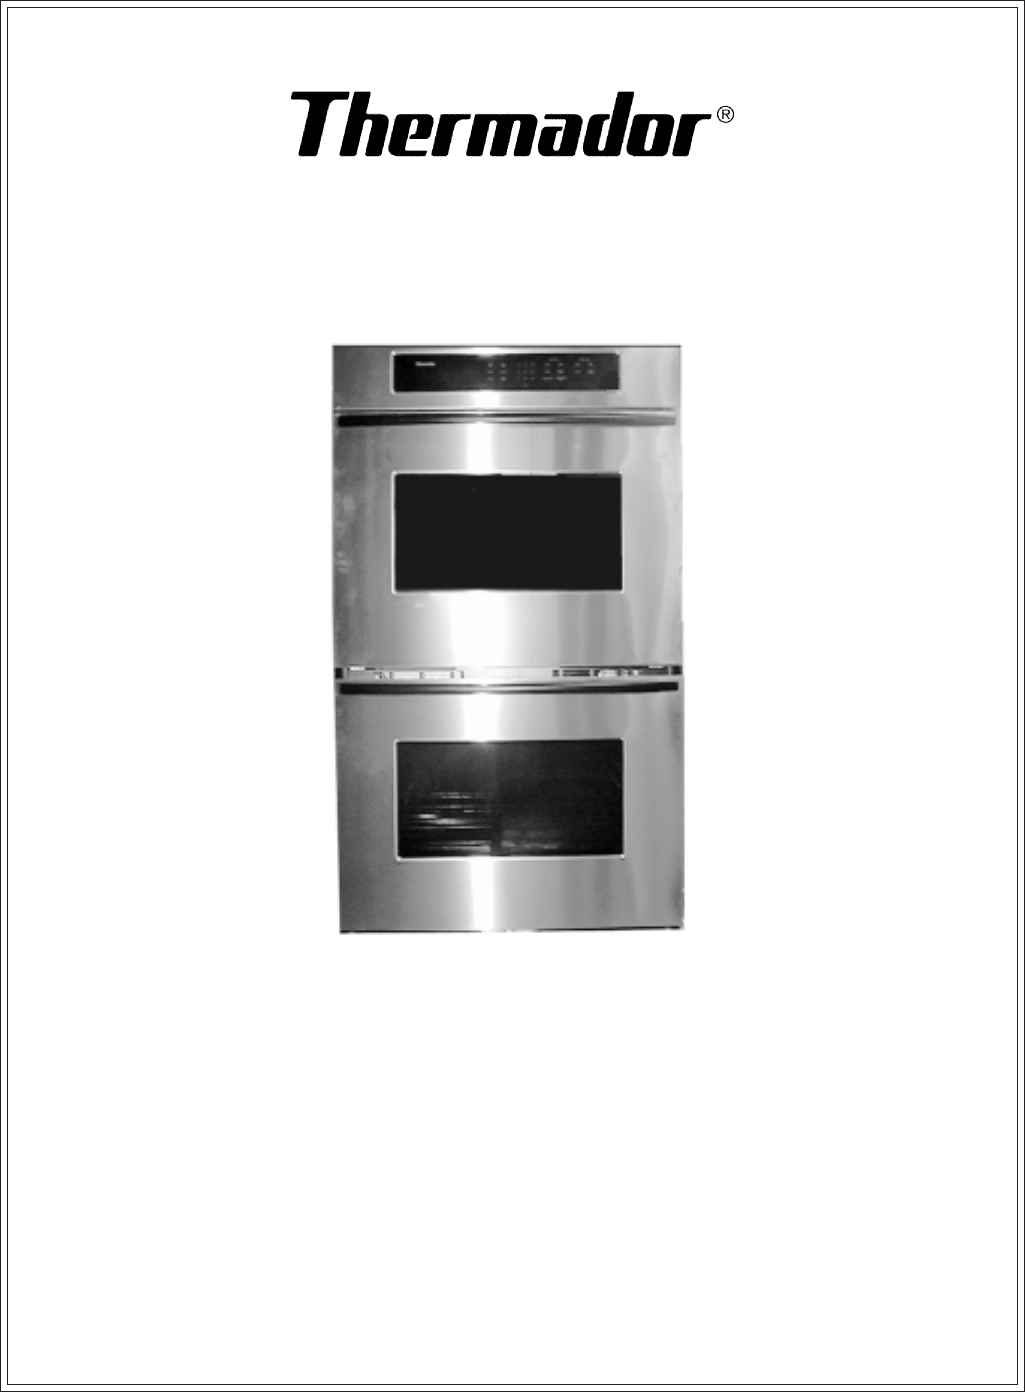 thermador double oven sc301 user guide manualsonline com rh kitchen manualsonline com Thermador French Door Refrigerator Thermador French Door Refrigerator